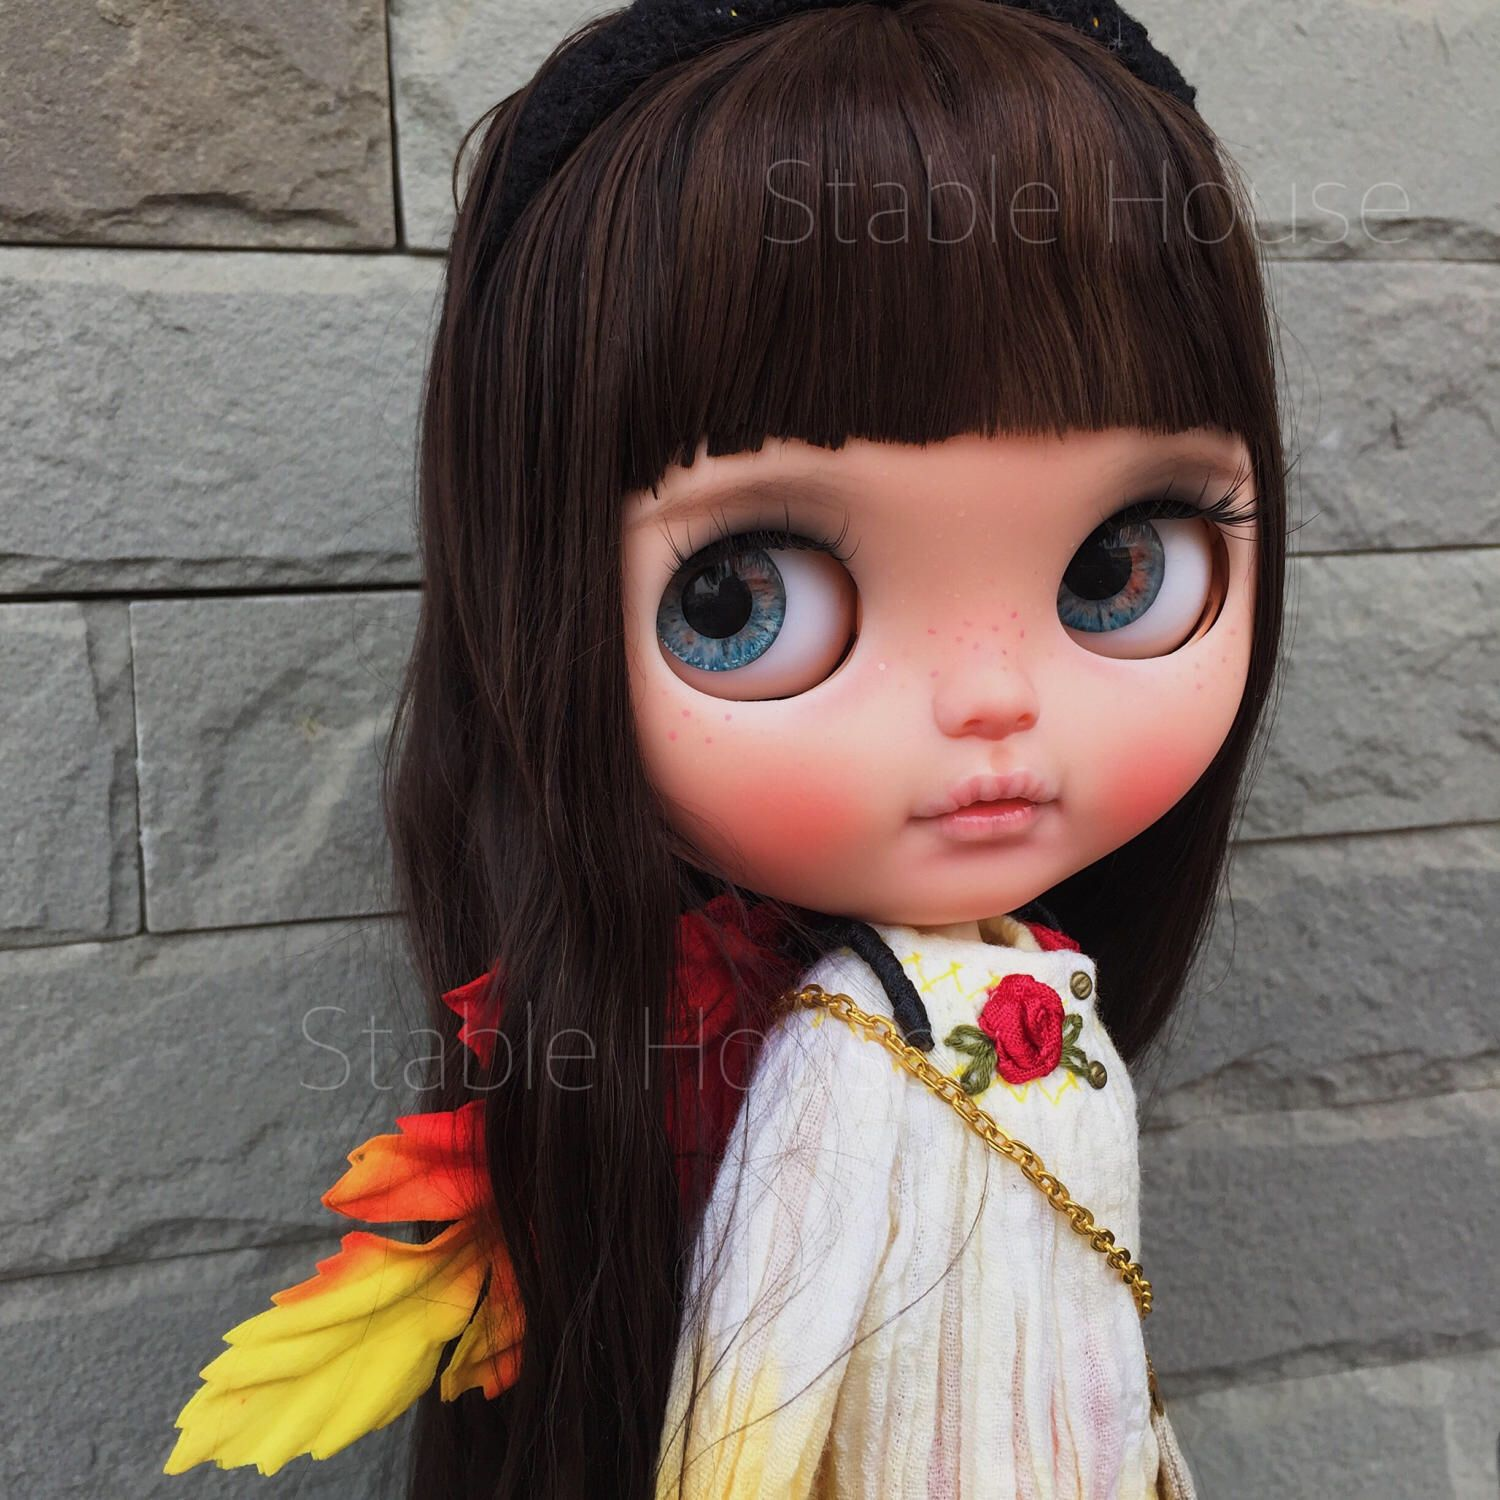 """Reserved for """"D"""" OOAK Custom Blythe Art Doll By Stablehouse No.185 """"Limei"""" by StableHouse on Etsy https://www.etsy.com/listing/127858917/reserved-for-d-ooak-custom-blythe-art"""